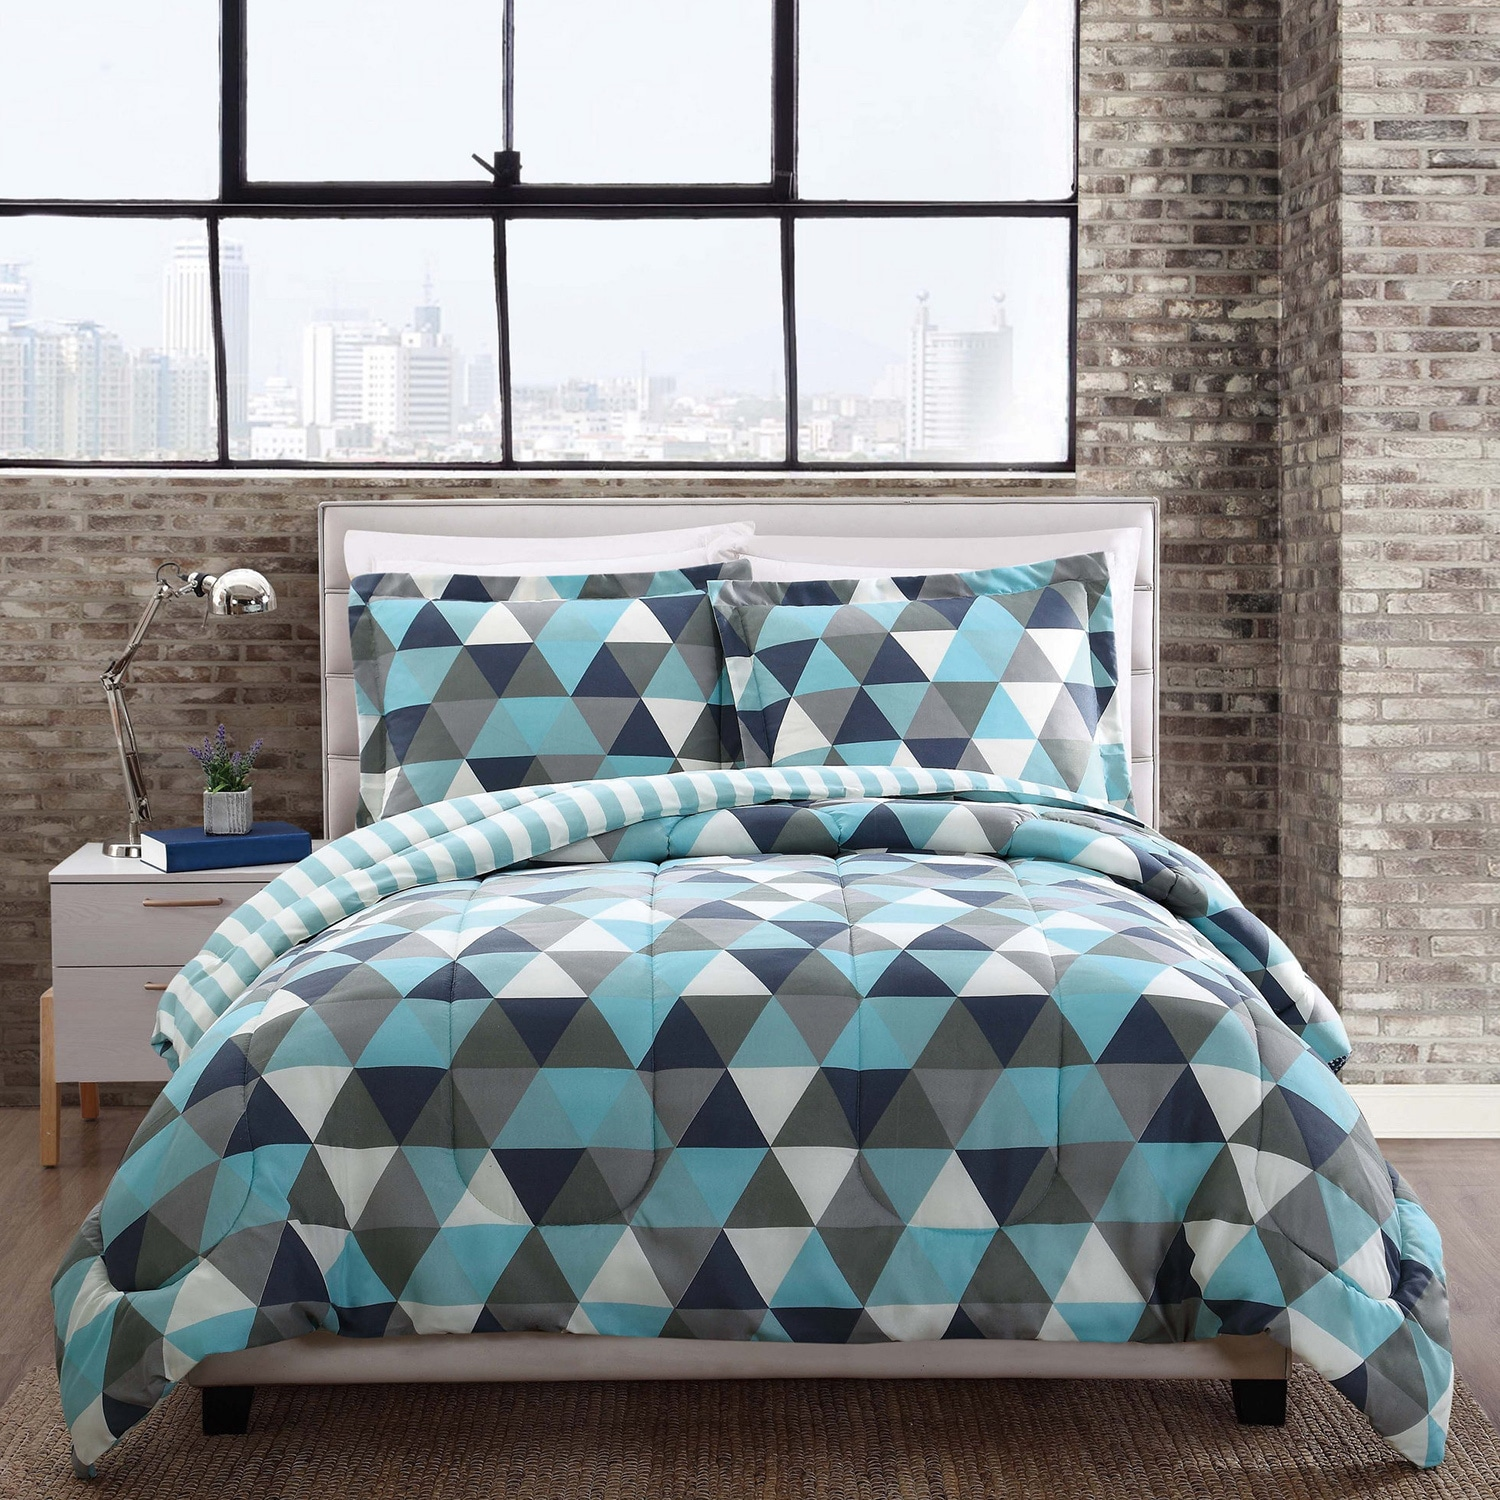 sia product bed shipping comforter glass free of orders overstock set com bath seafoam bedding on sea amy